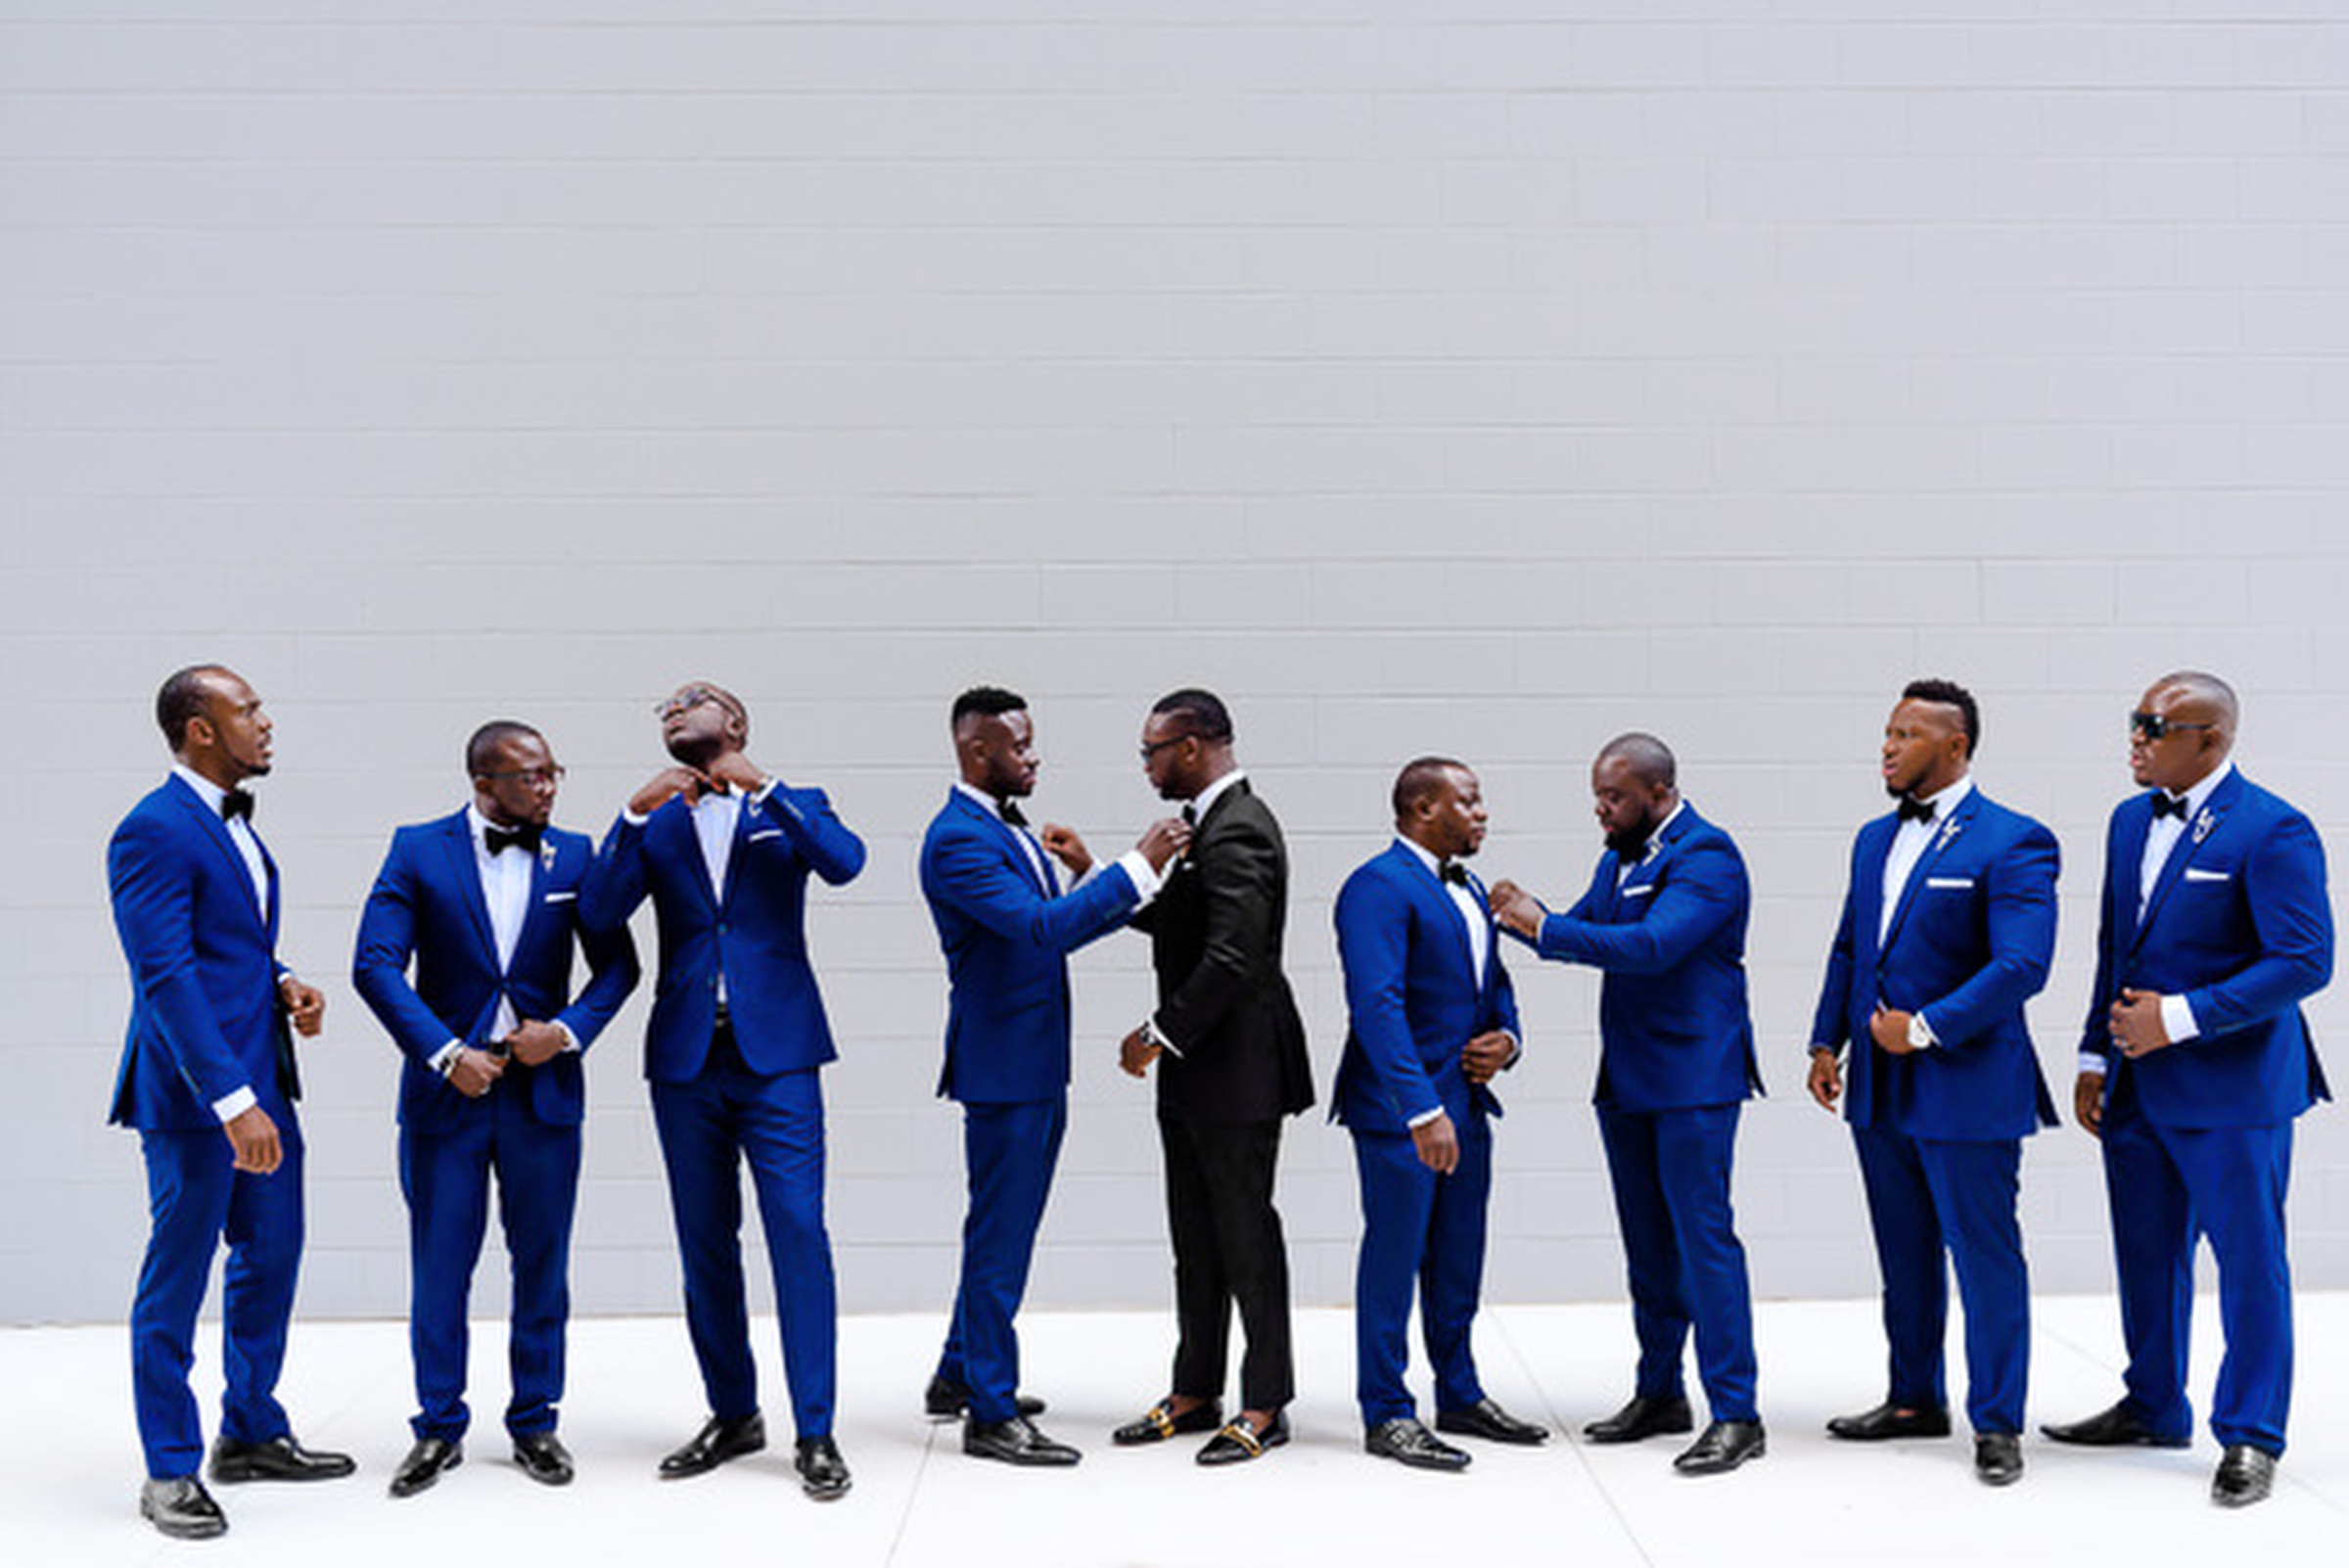 Groomsmen in bright blue suits photographed by Kirth Bobb - Washington D.C.